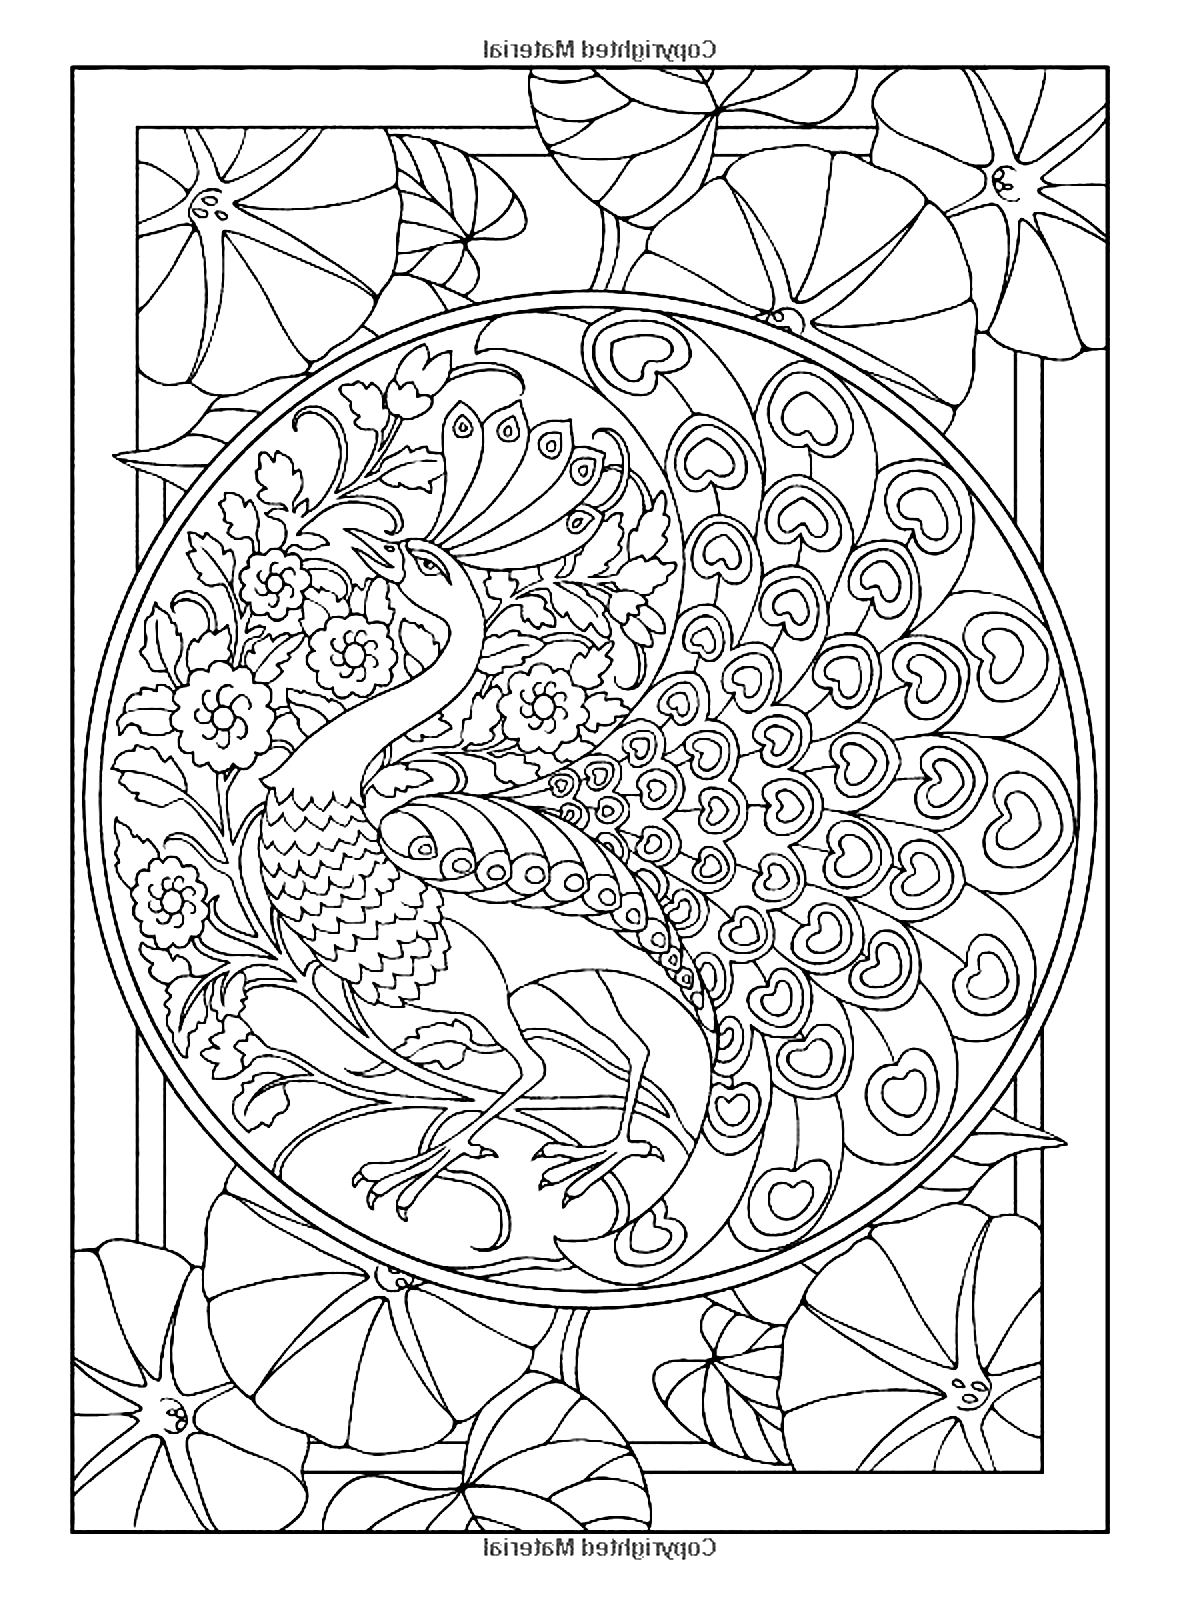 The peacock an animal often used in art nouveau illustrations